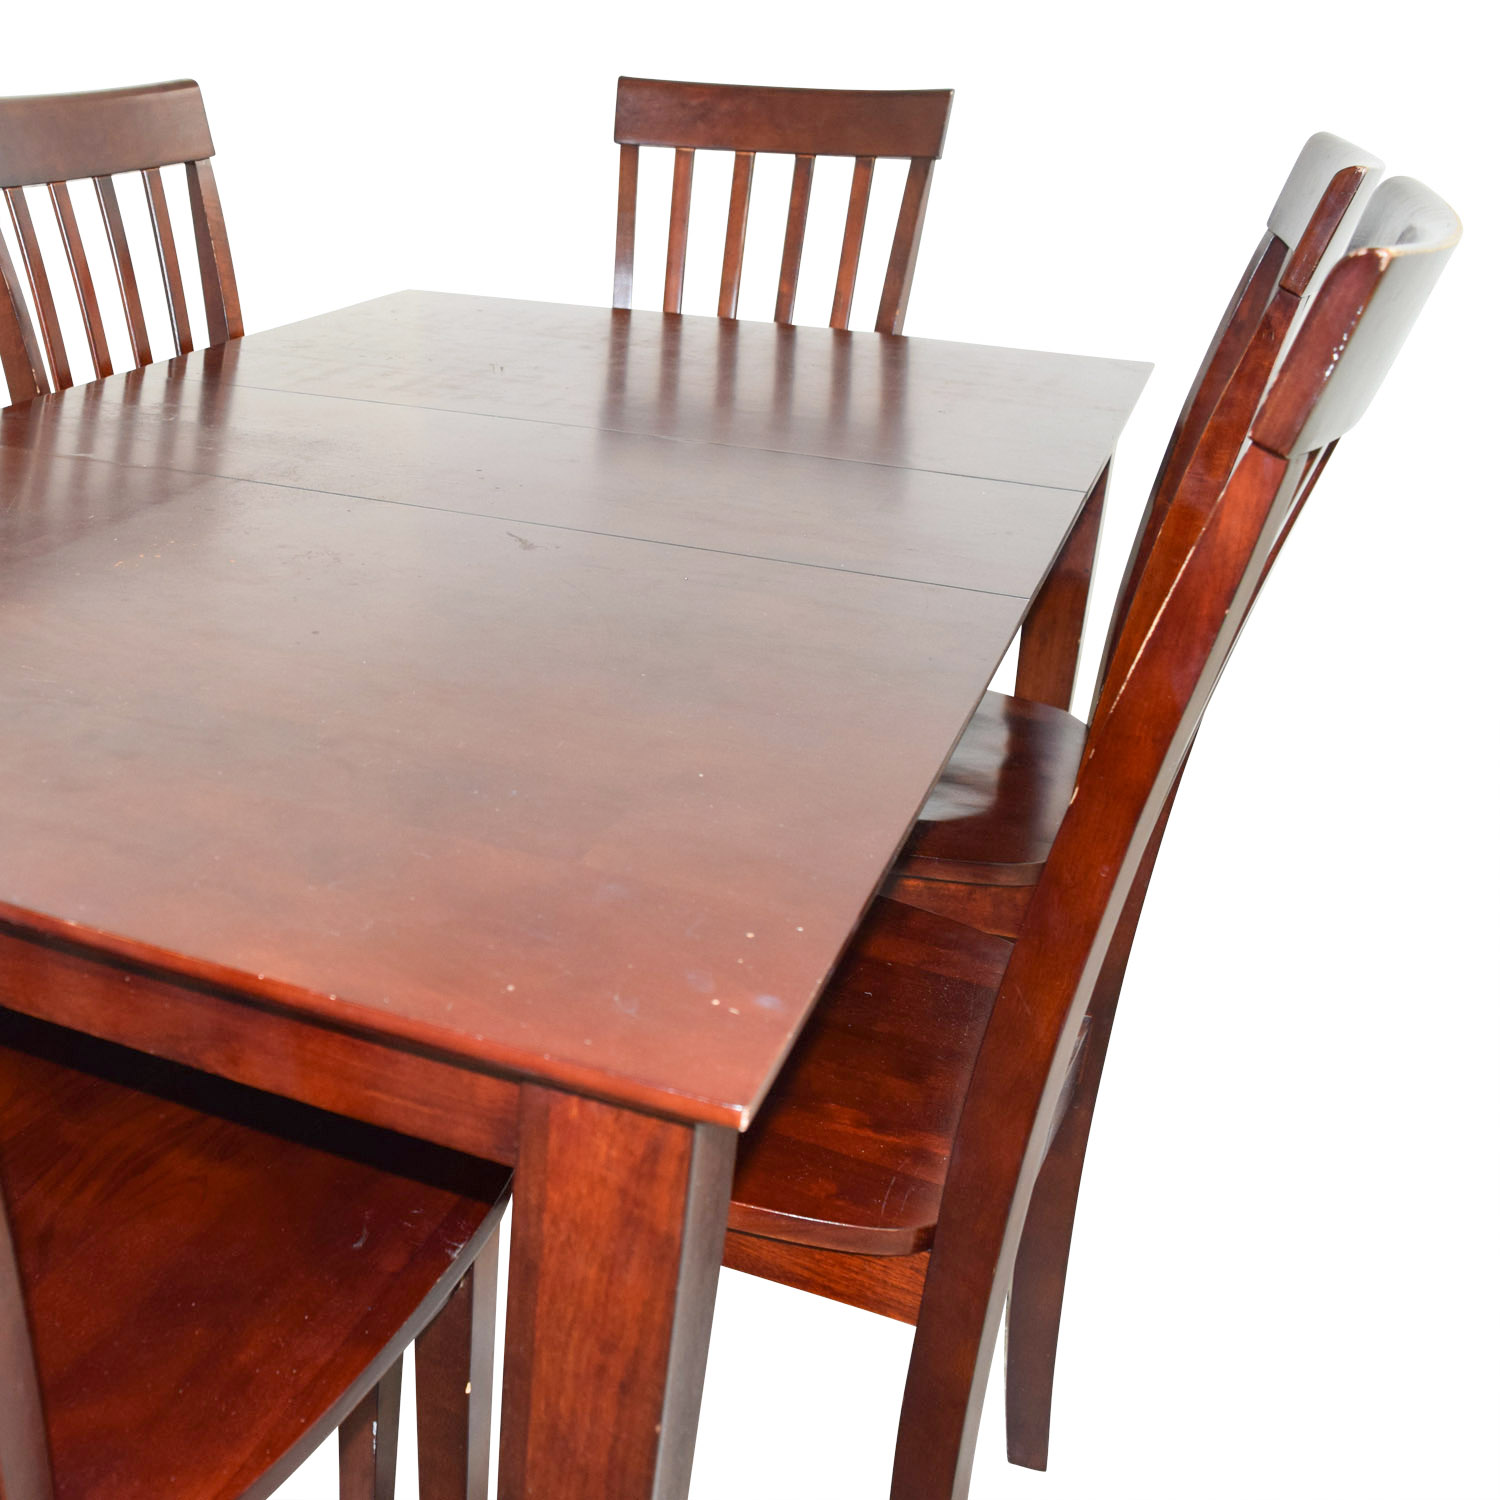 89 OFF  Bobs Discount Furniture Bobs Furniture Dining